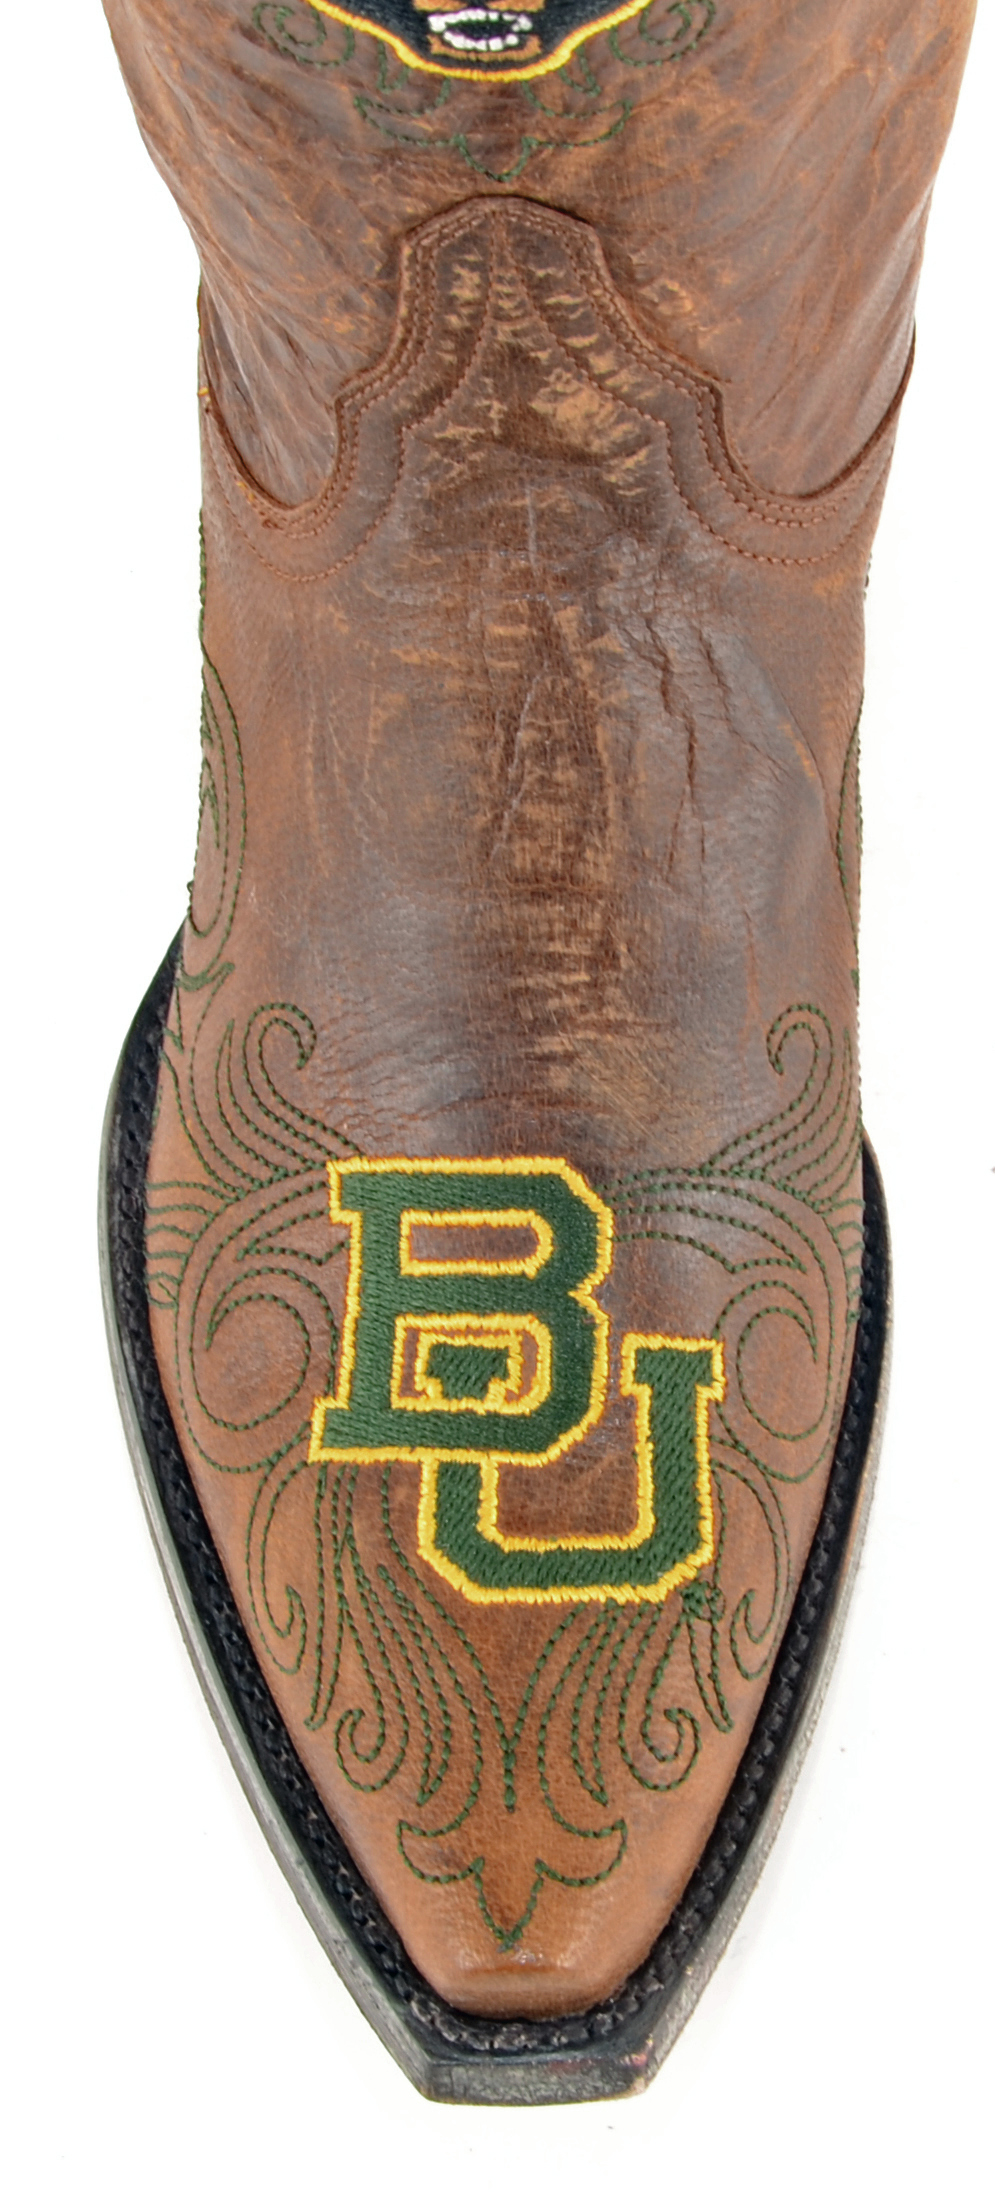 """Gameday Leather Boots Women's 10"""" Short Leather Gameday Baylor Cowboy Boots 3822 NEW accc9c"""